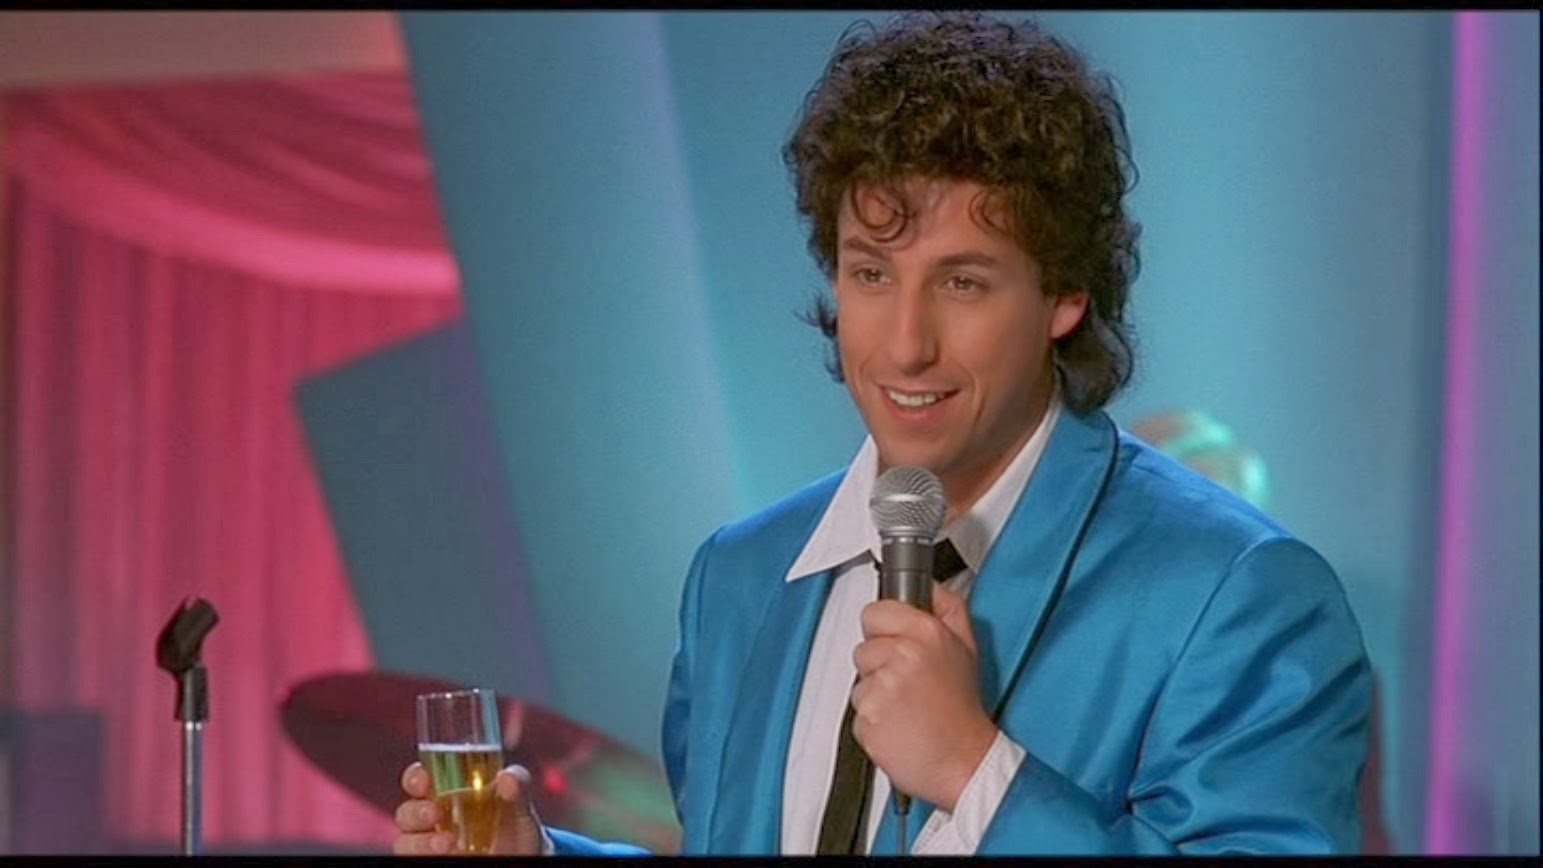 Happyotter: THE WEDDING SINGER (1998)